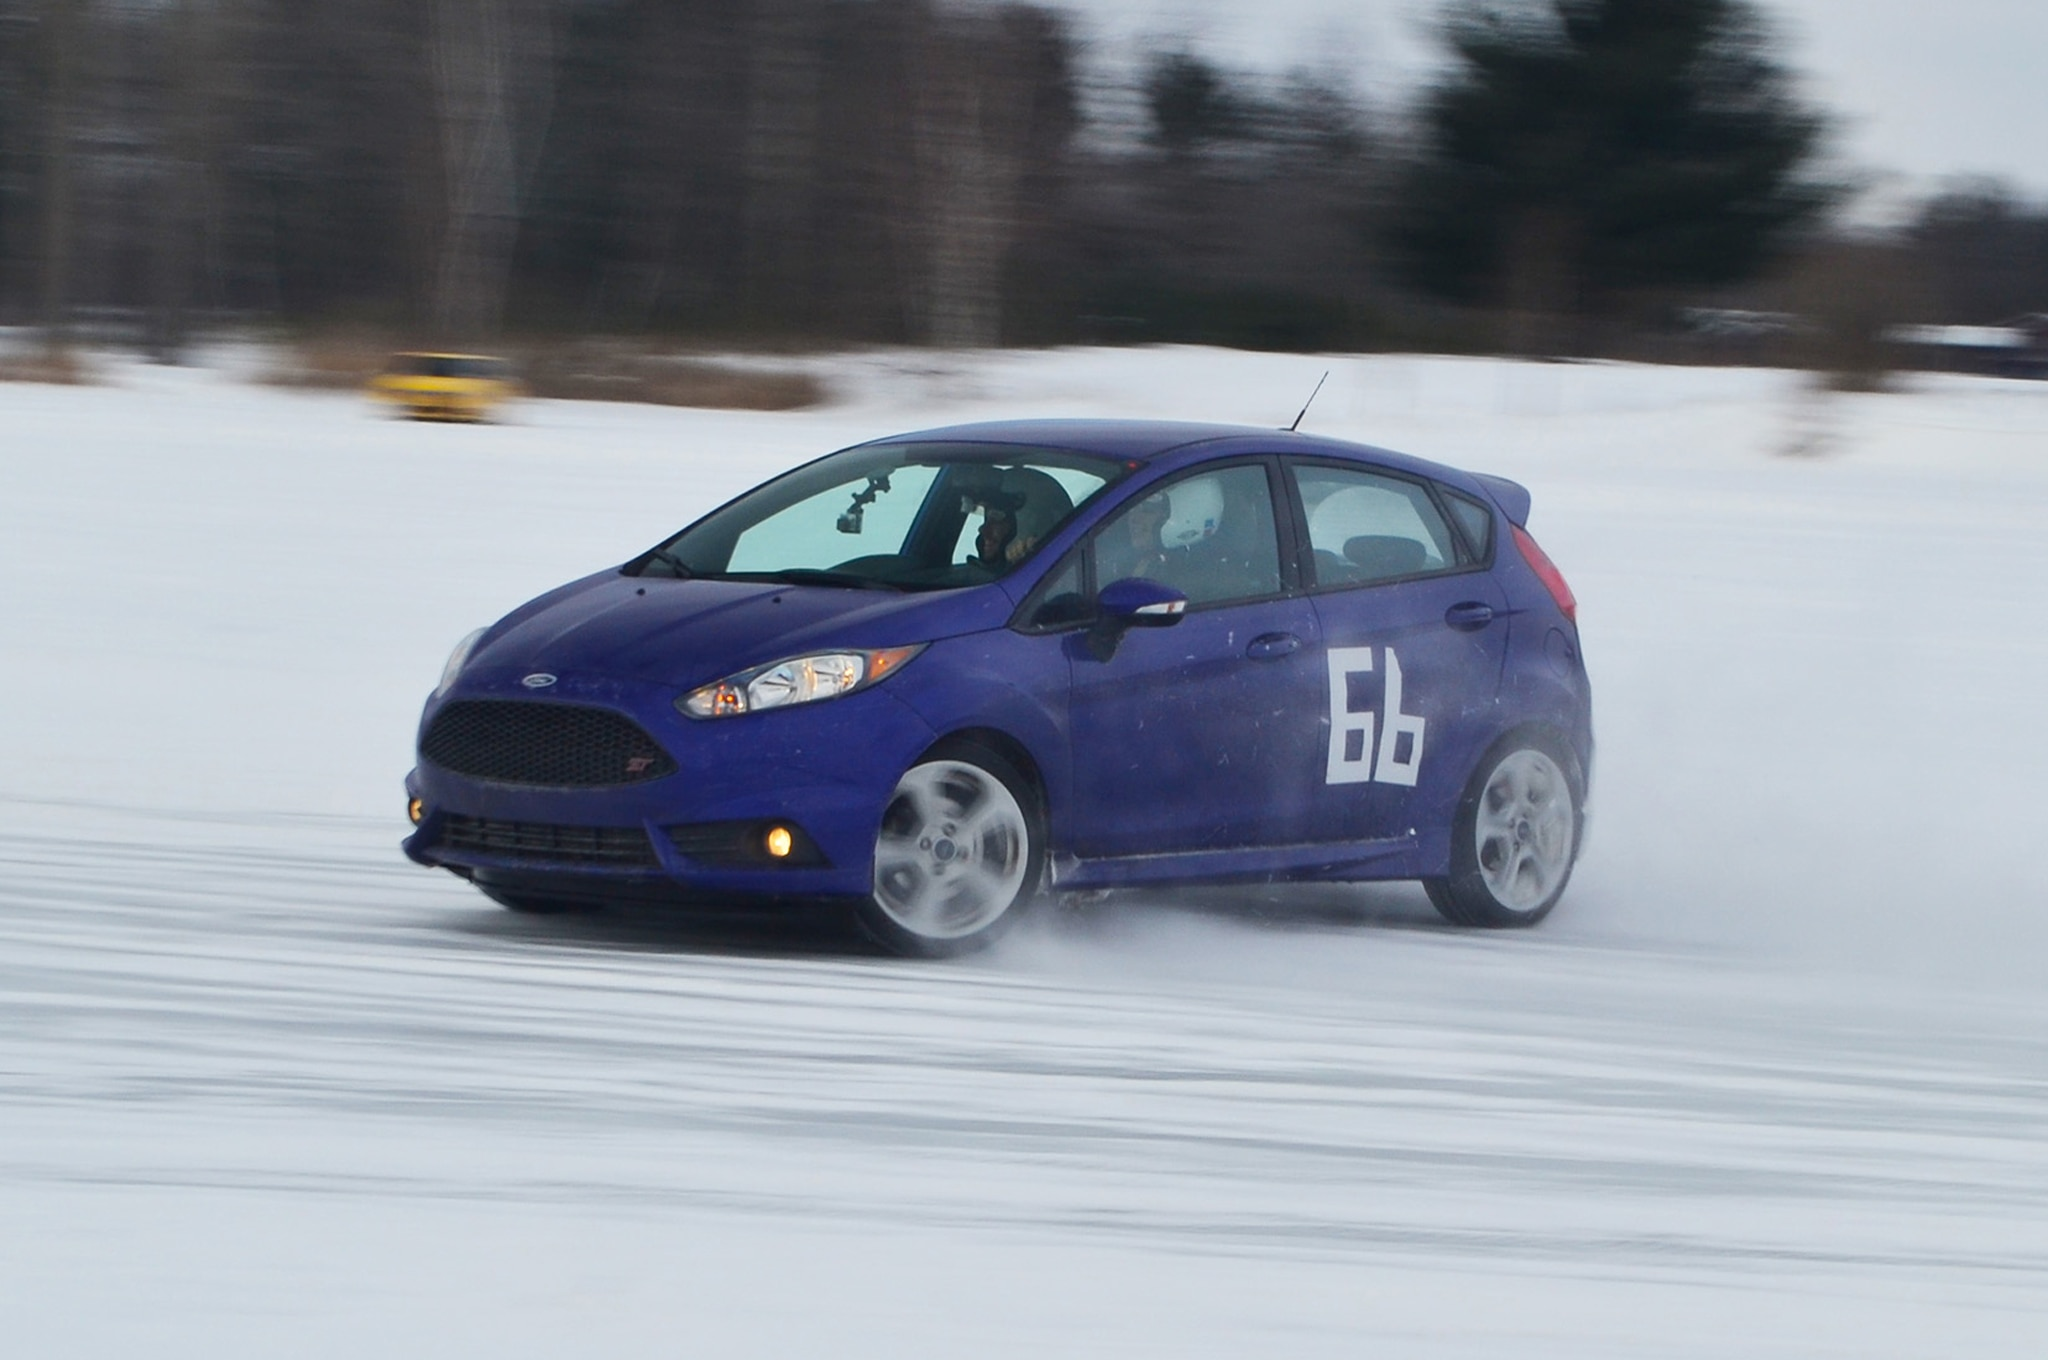 634c316cf 2014 Ford Fiesta ST - The ST Goes Ice Racing